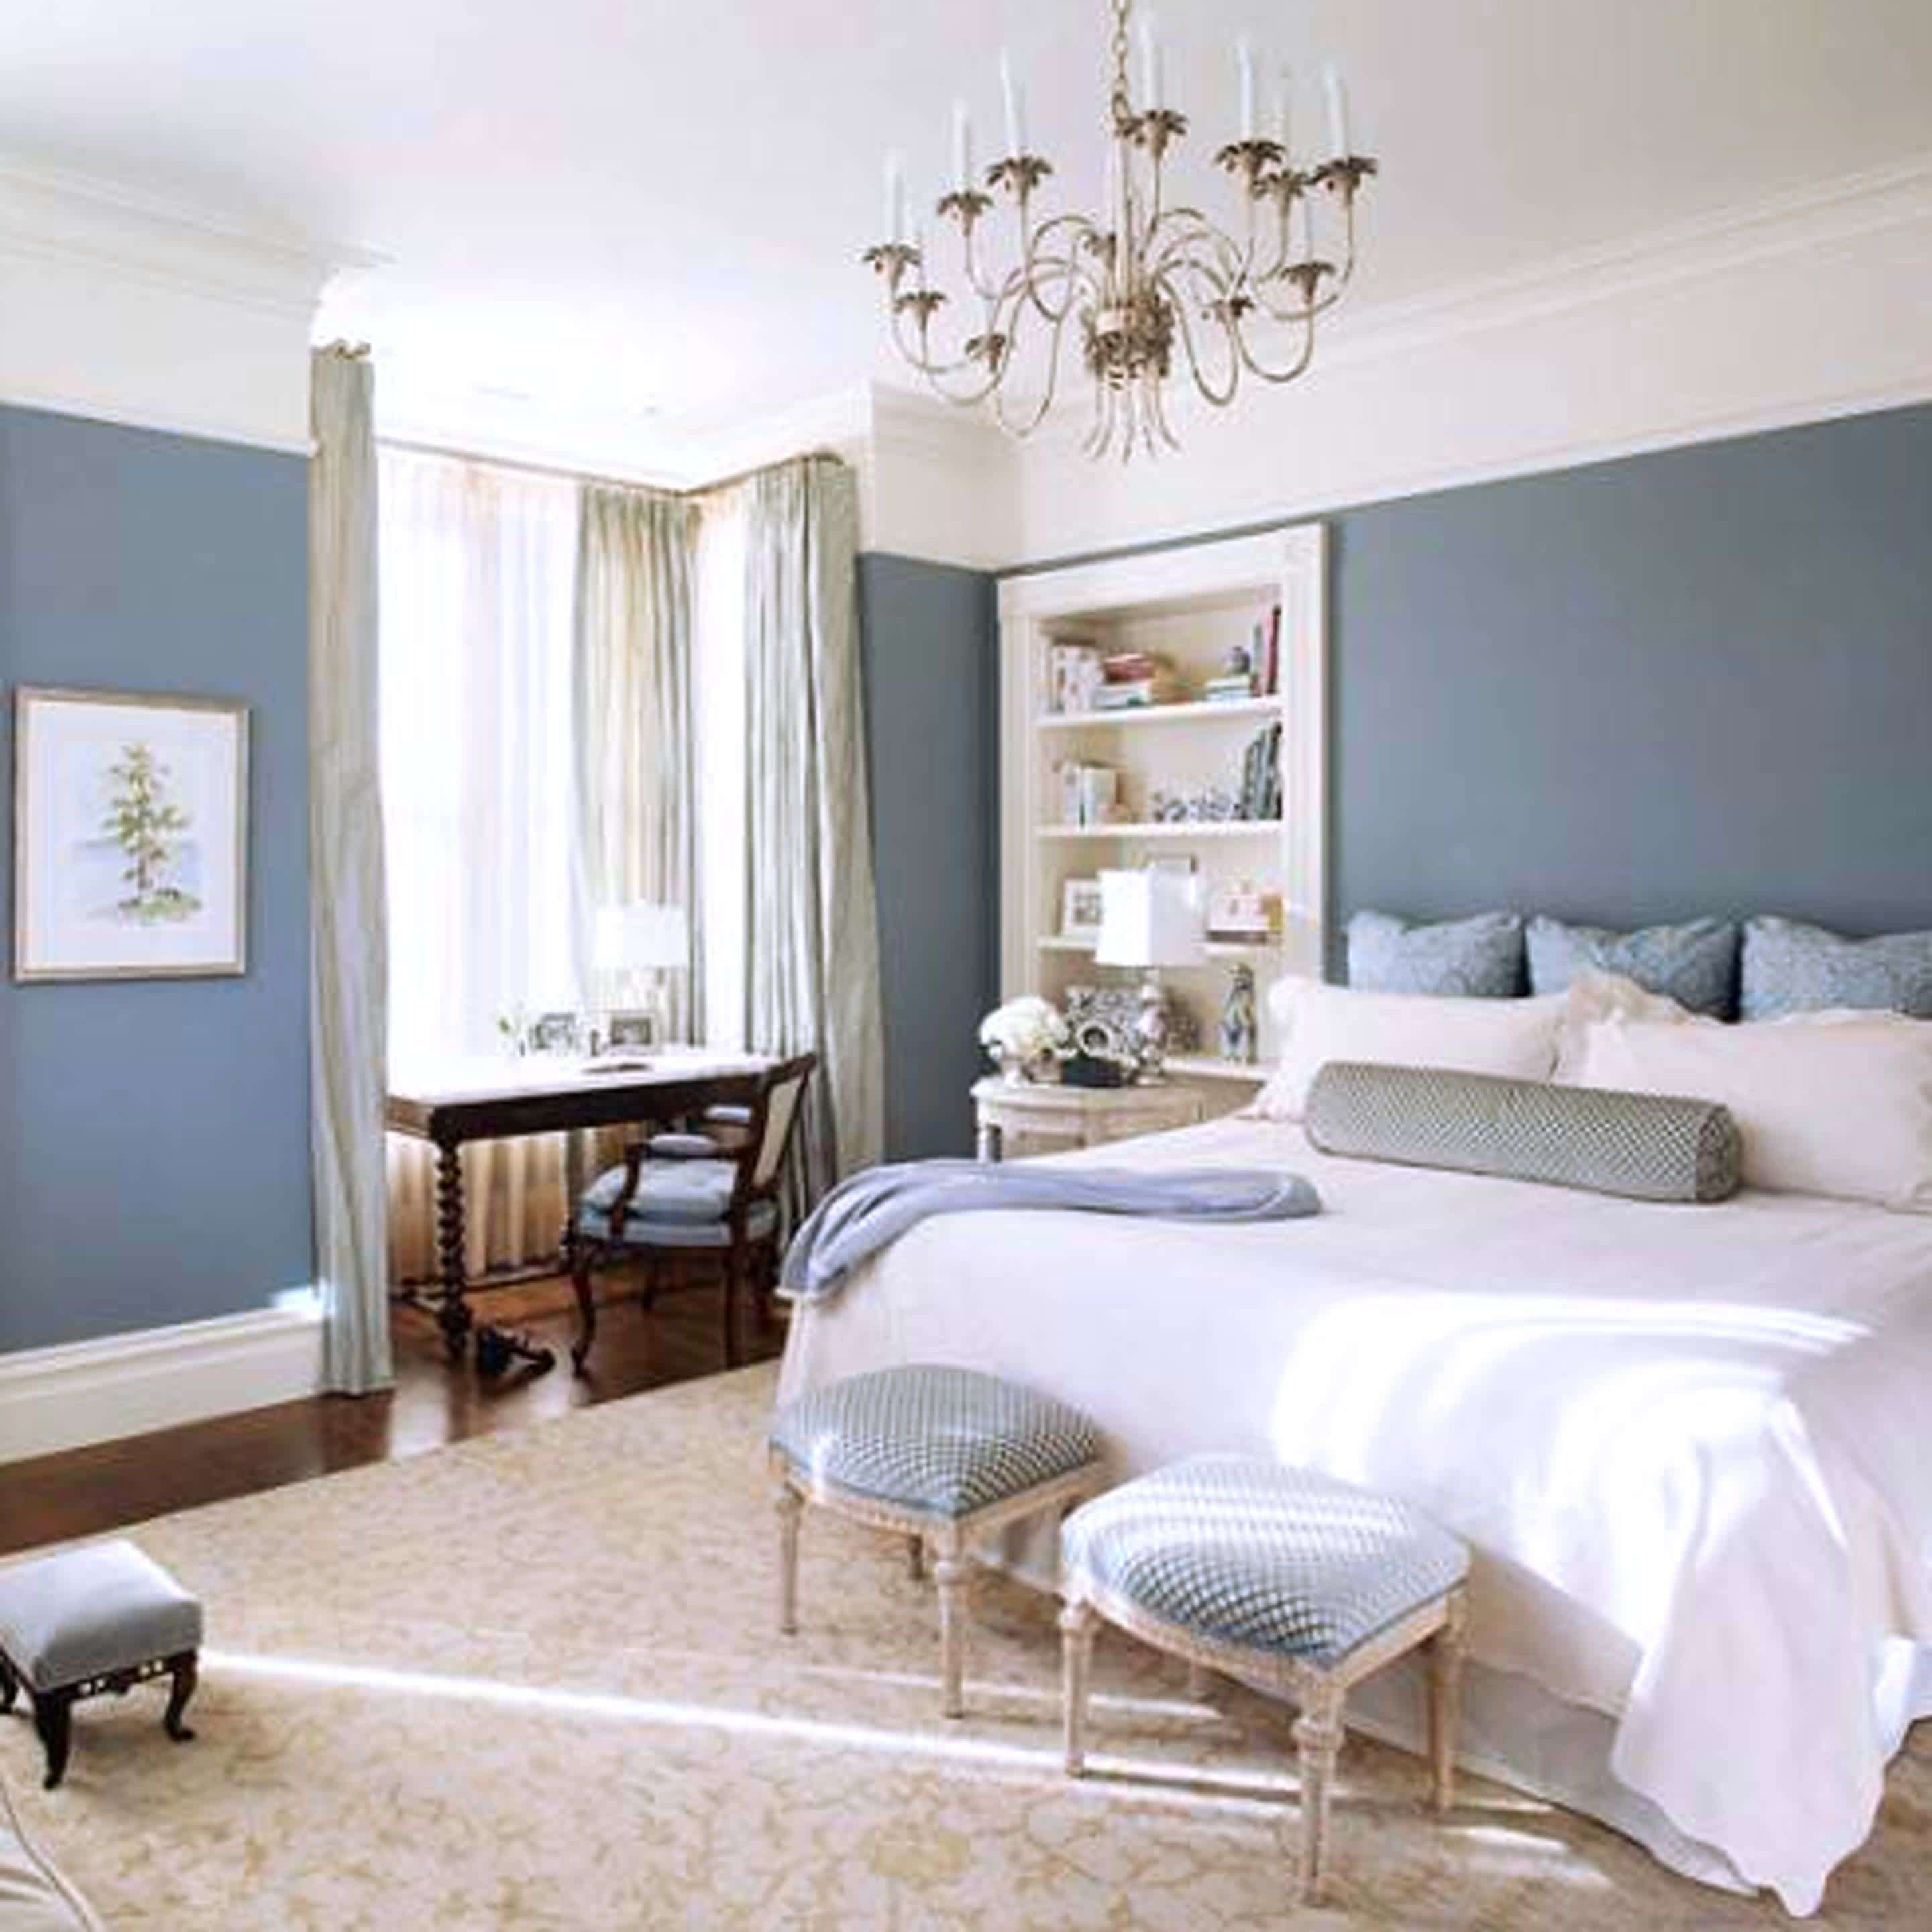 Surprising Bedroom Peroconlagr Blue Accent Wall Bedroom Ideas Plus Download Free Architecture Designs Xaembritishbridgeorg